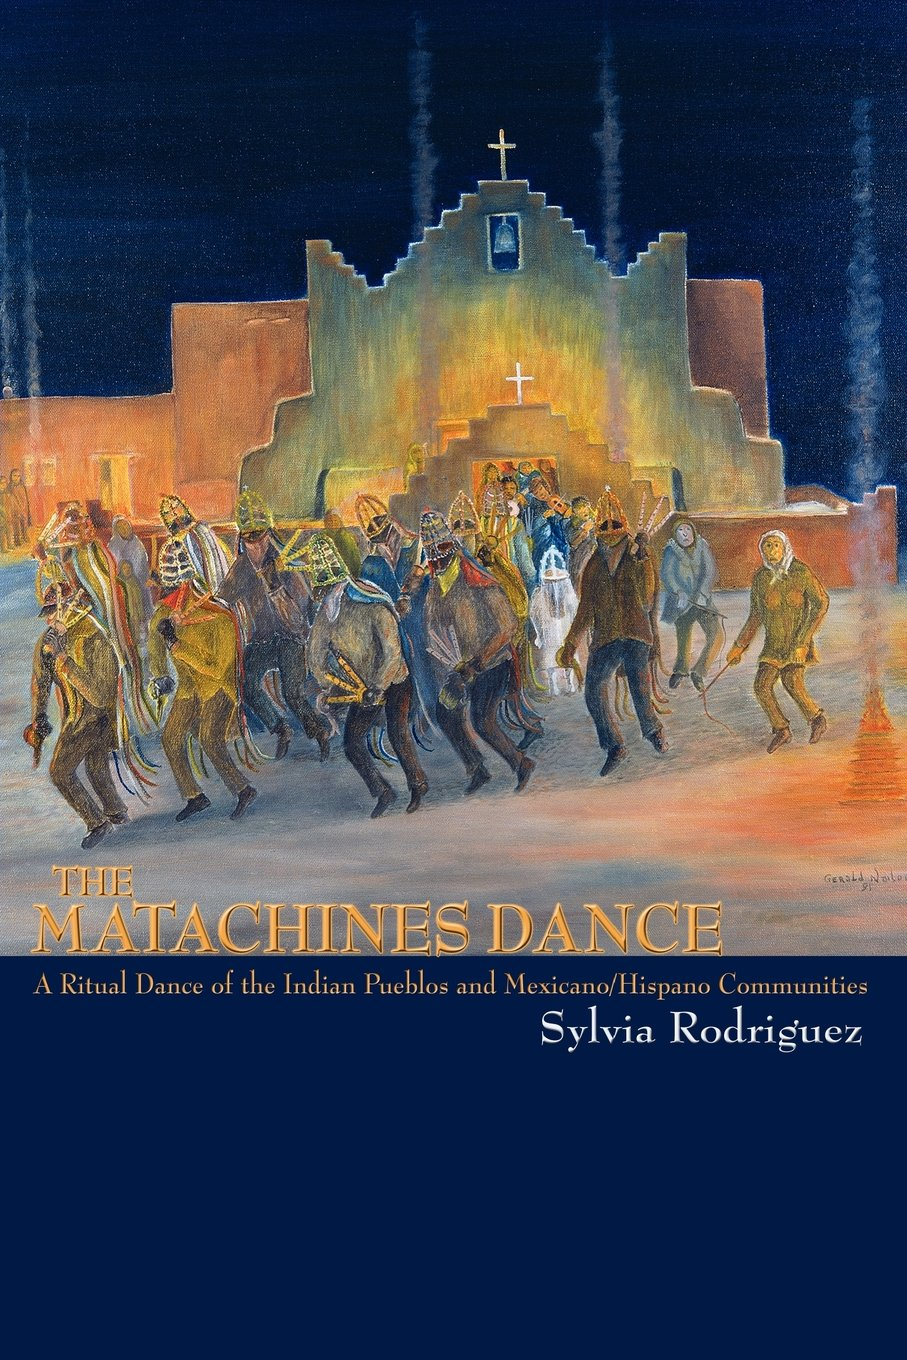 The Matachines Dance, A Ritual Dance of the Indian Pueblos and Mexicano/Hispano Communities (Southwest Heritage)